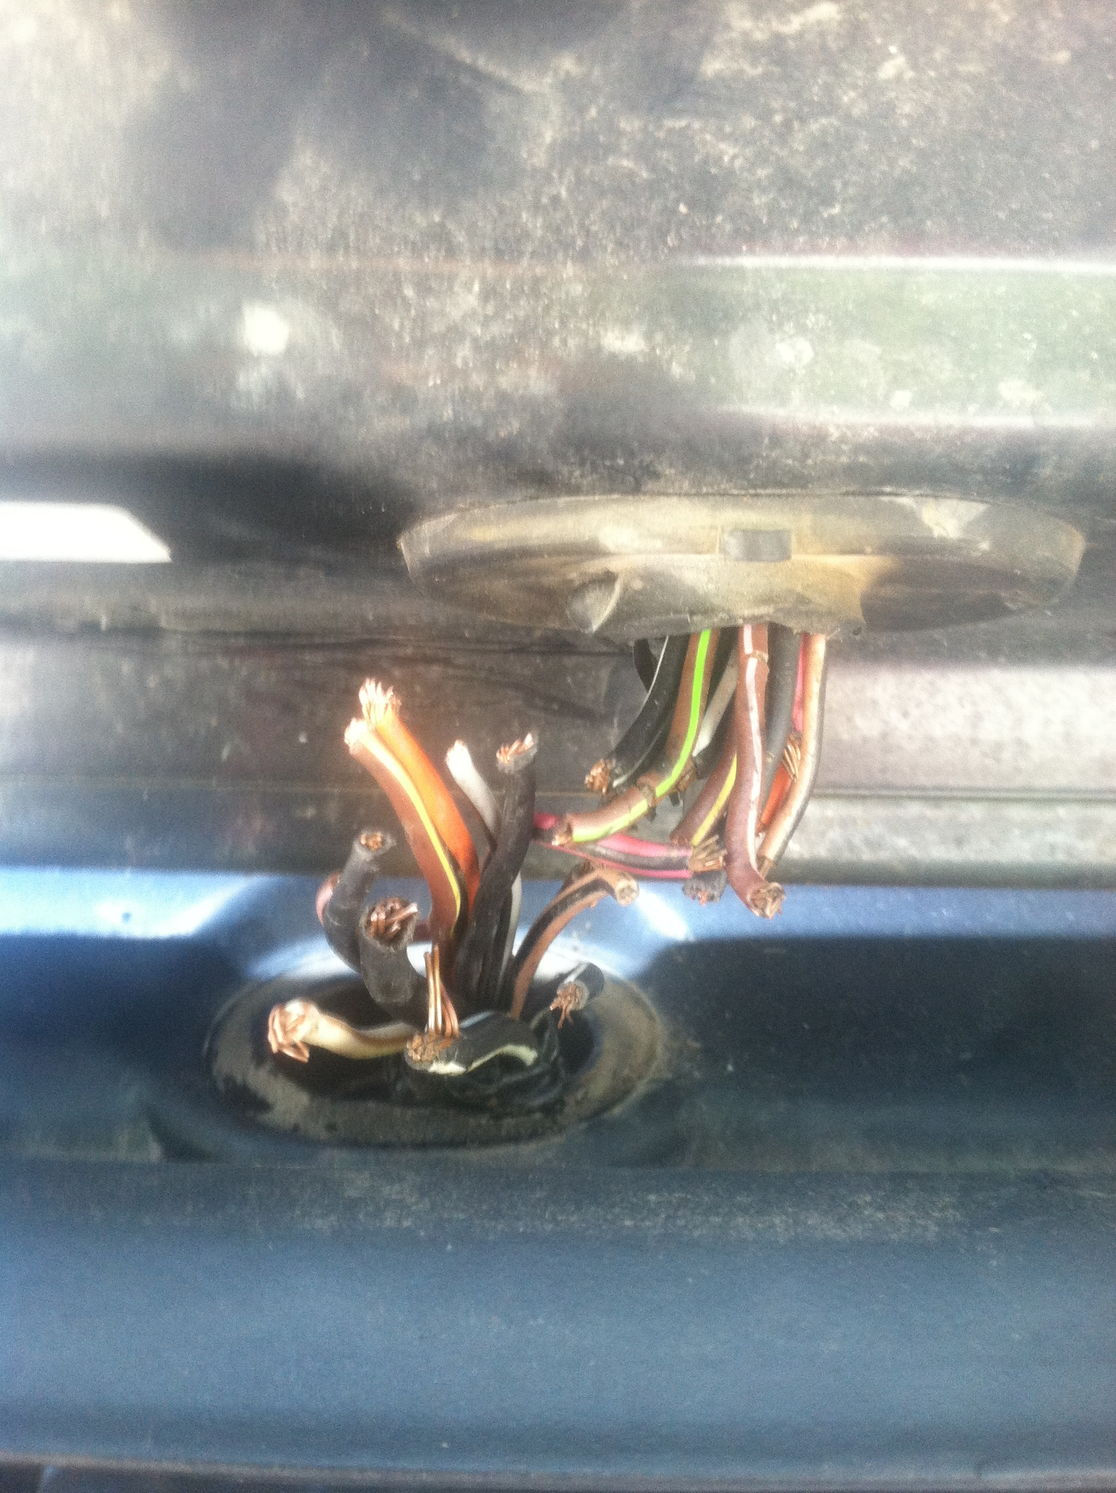 How To Fix Wiring In Back Hatch Write Up Jeep Cherokee Forum Rear Door Pigtails Youll Need 18white And 14orange Wire As Well Butt Connectors Blue Is Size 16 14 Red 18 A Good Pare Of Cutters